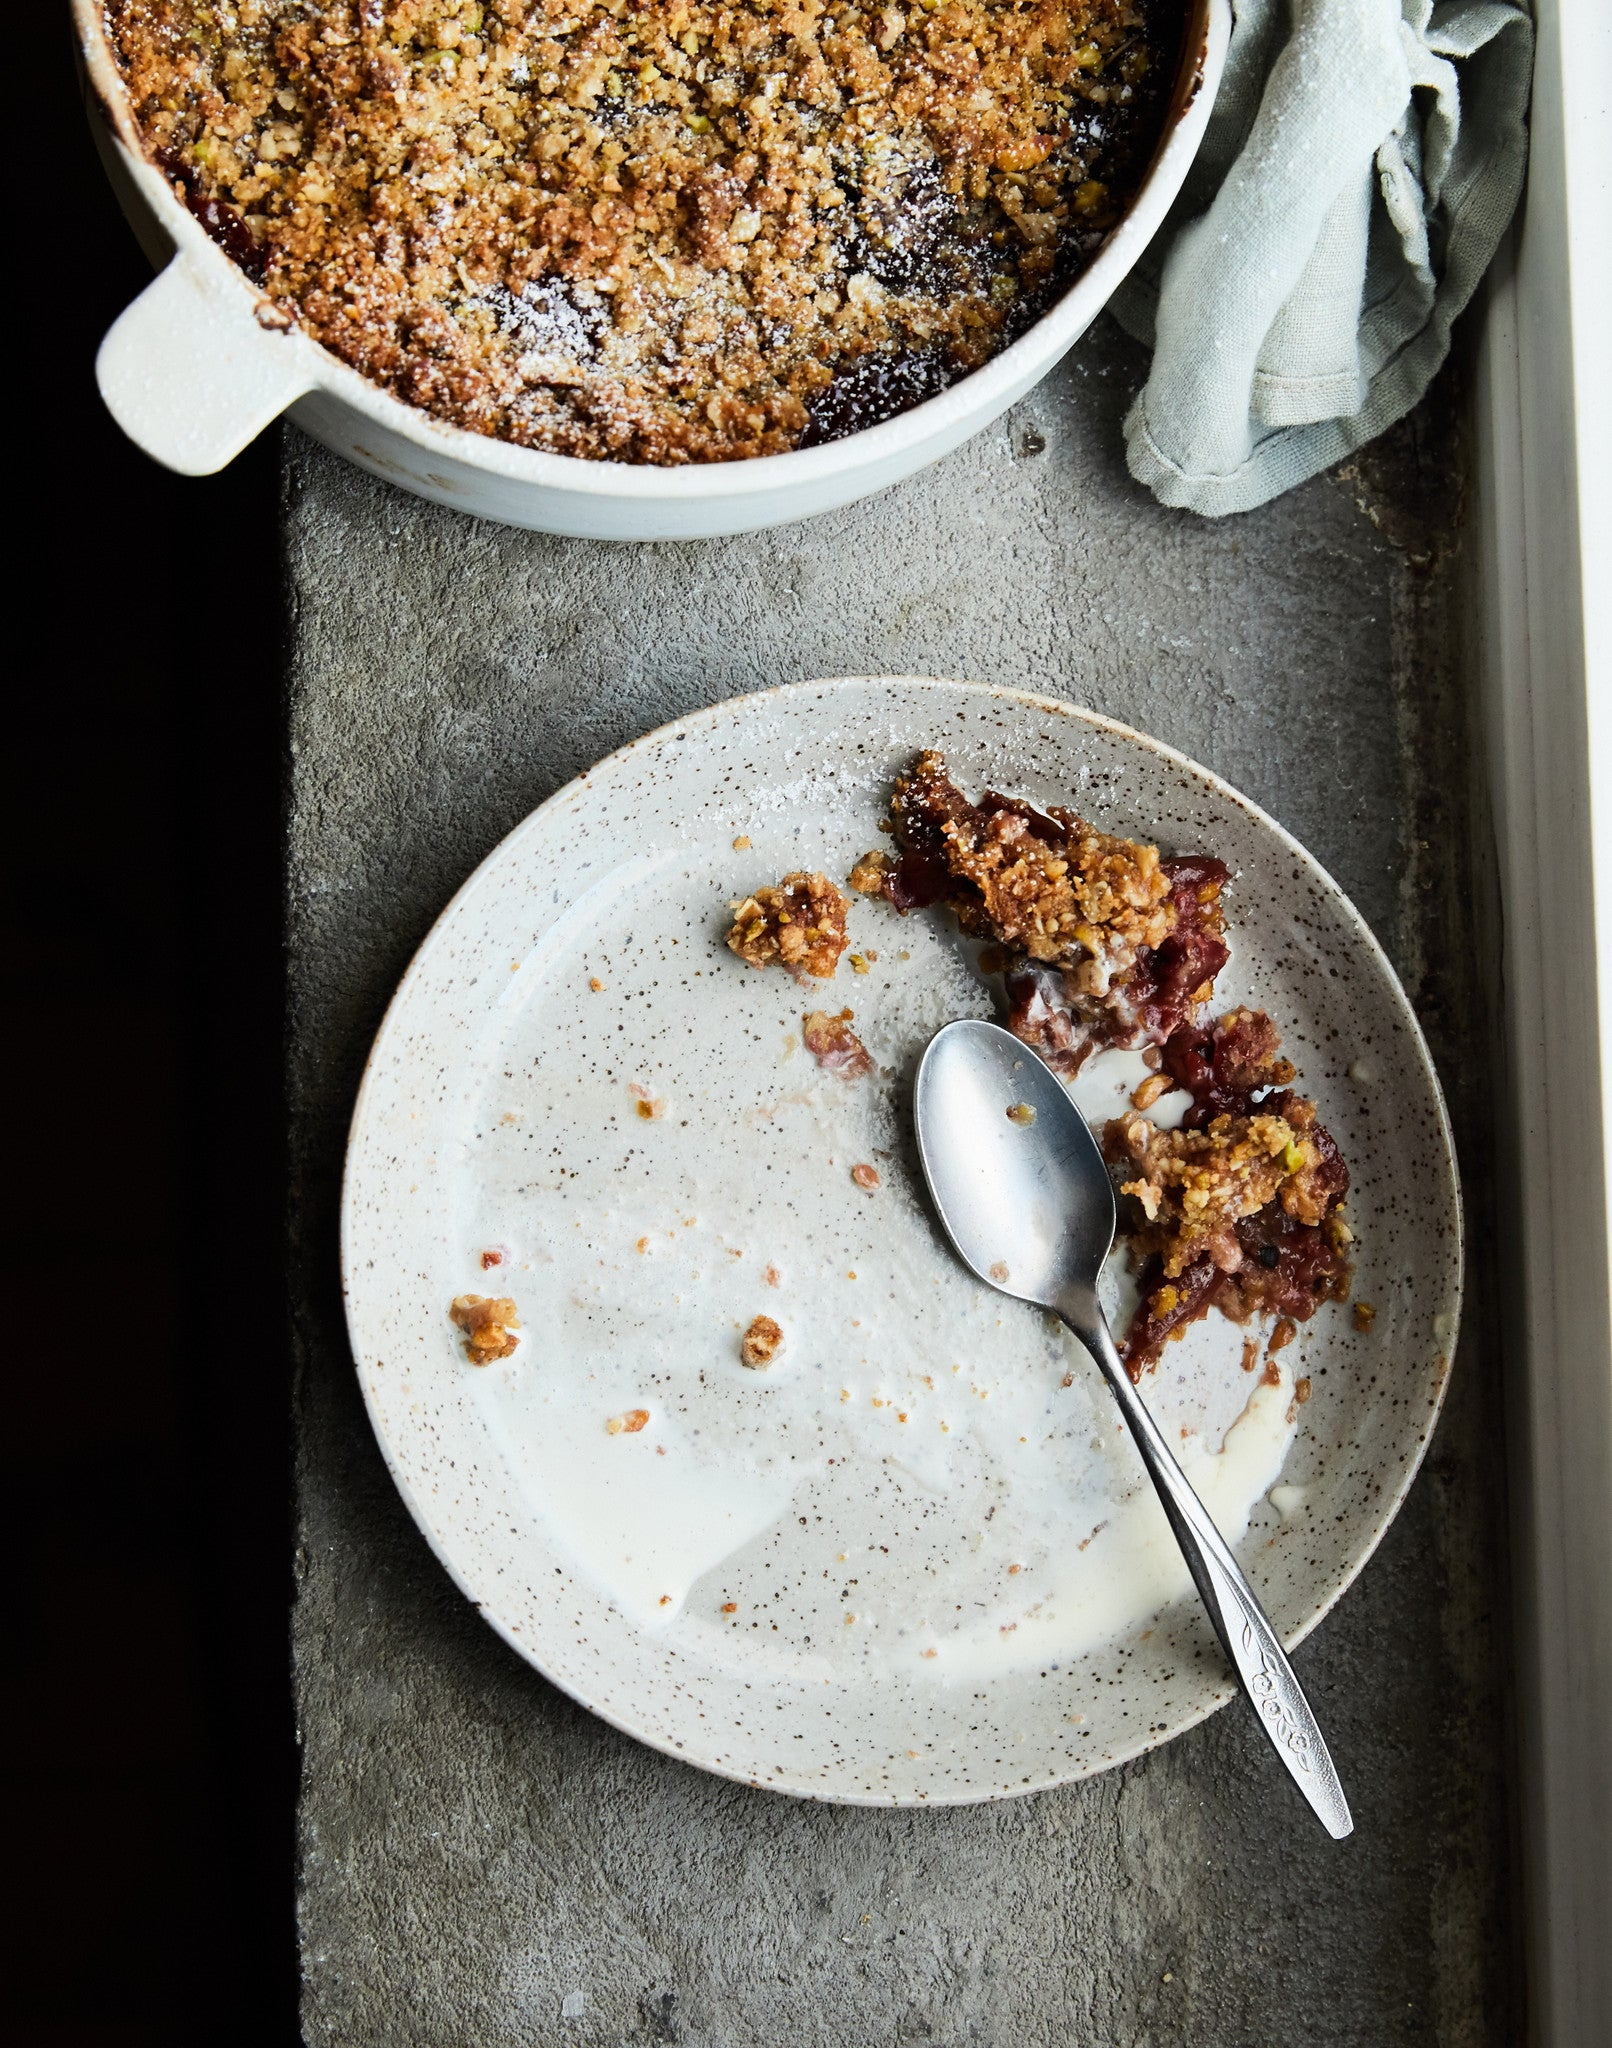 Herriott Grace Cherry Crumble